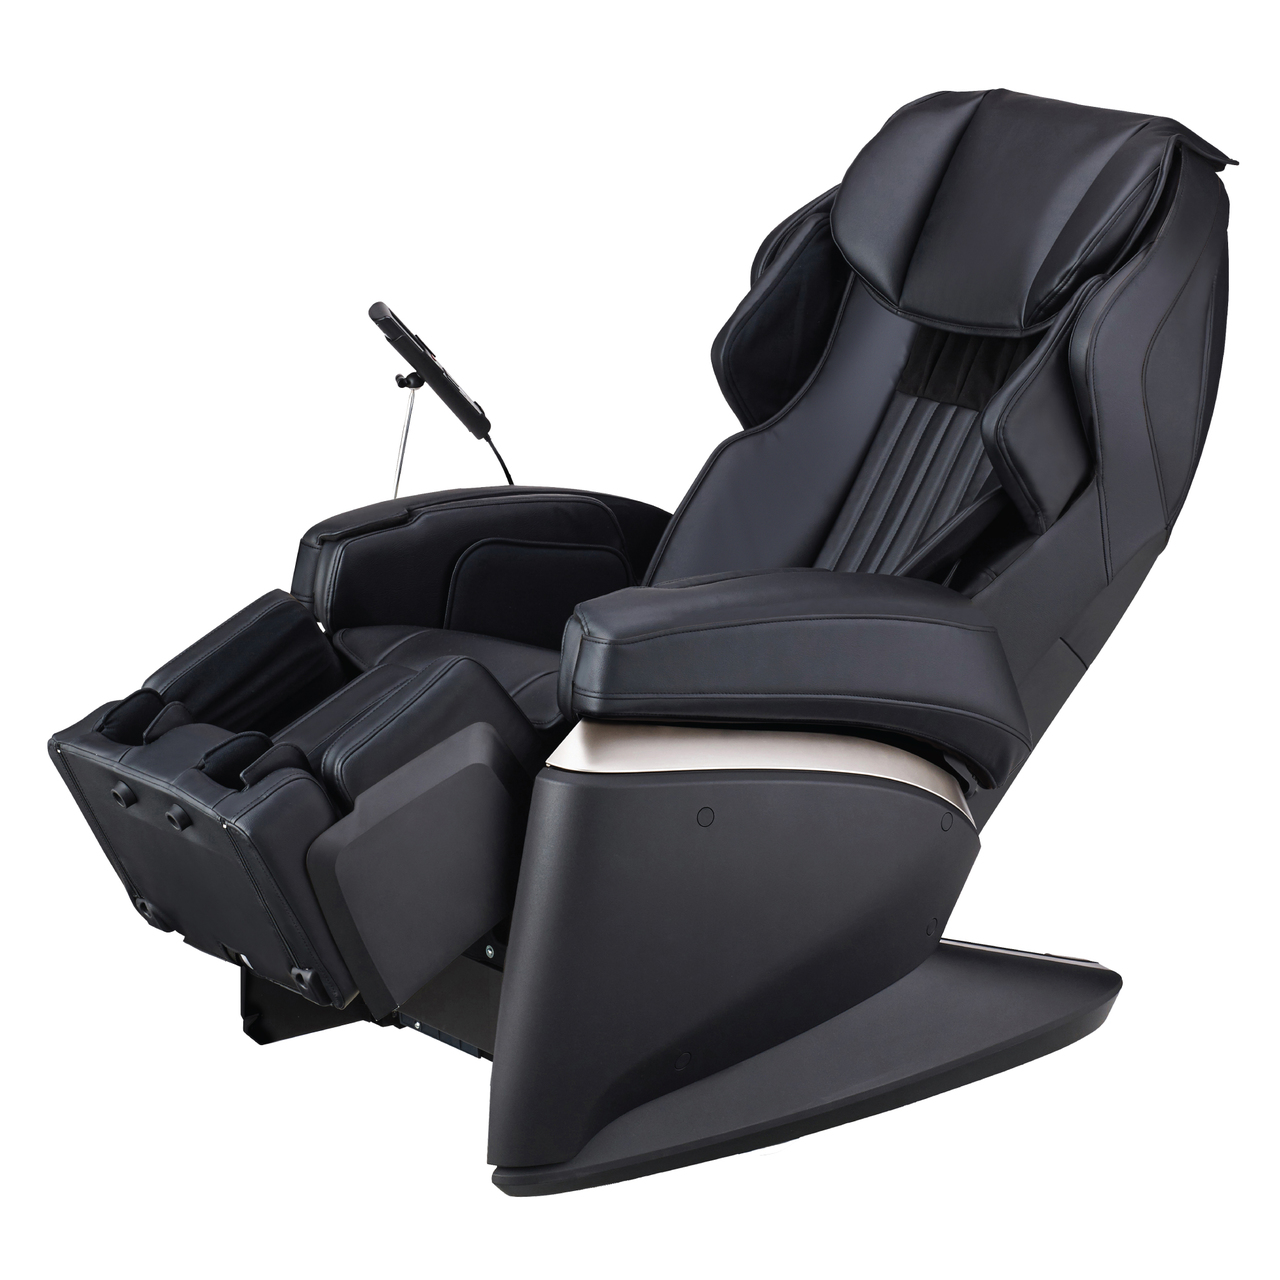 Osaki OS-JP Pro Premium 4S Japan Massage Chair